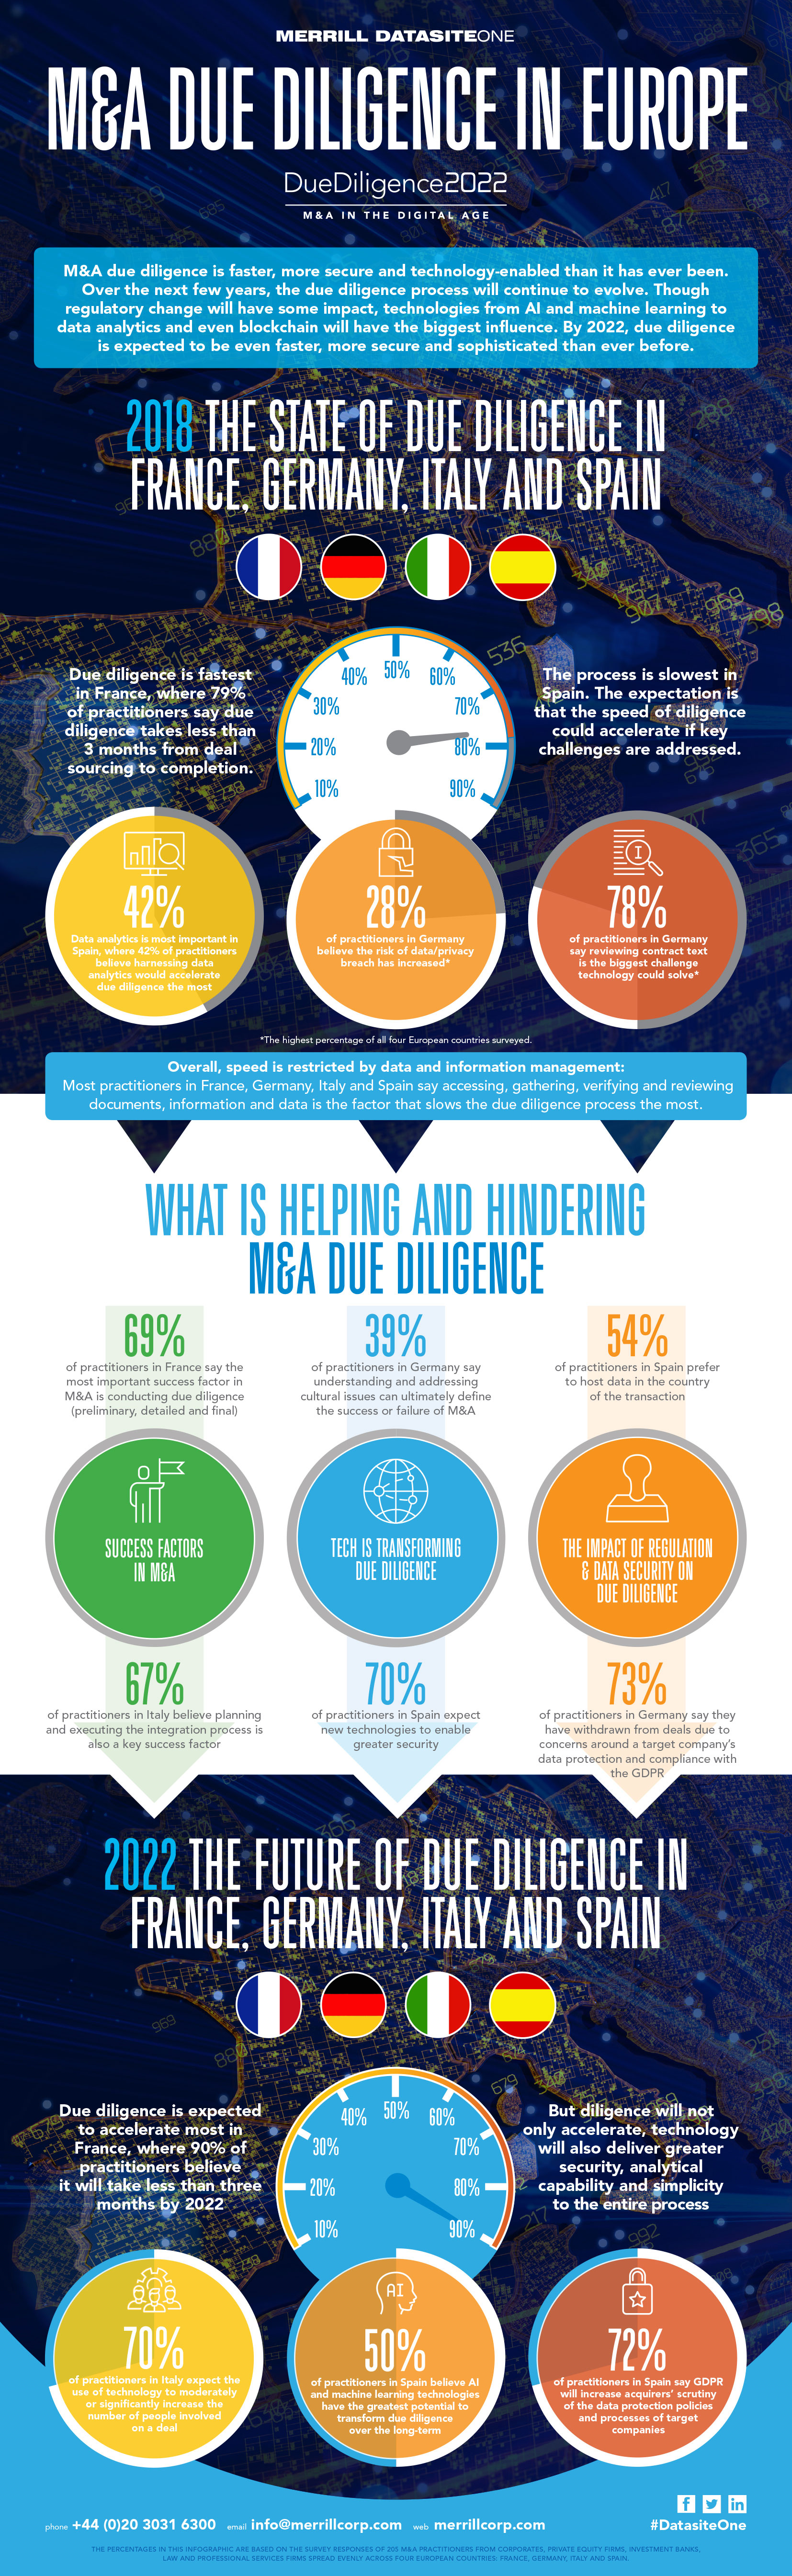 M&A due diligince in Europe infographic